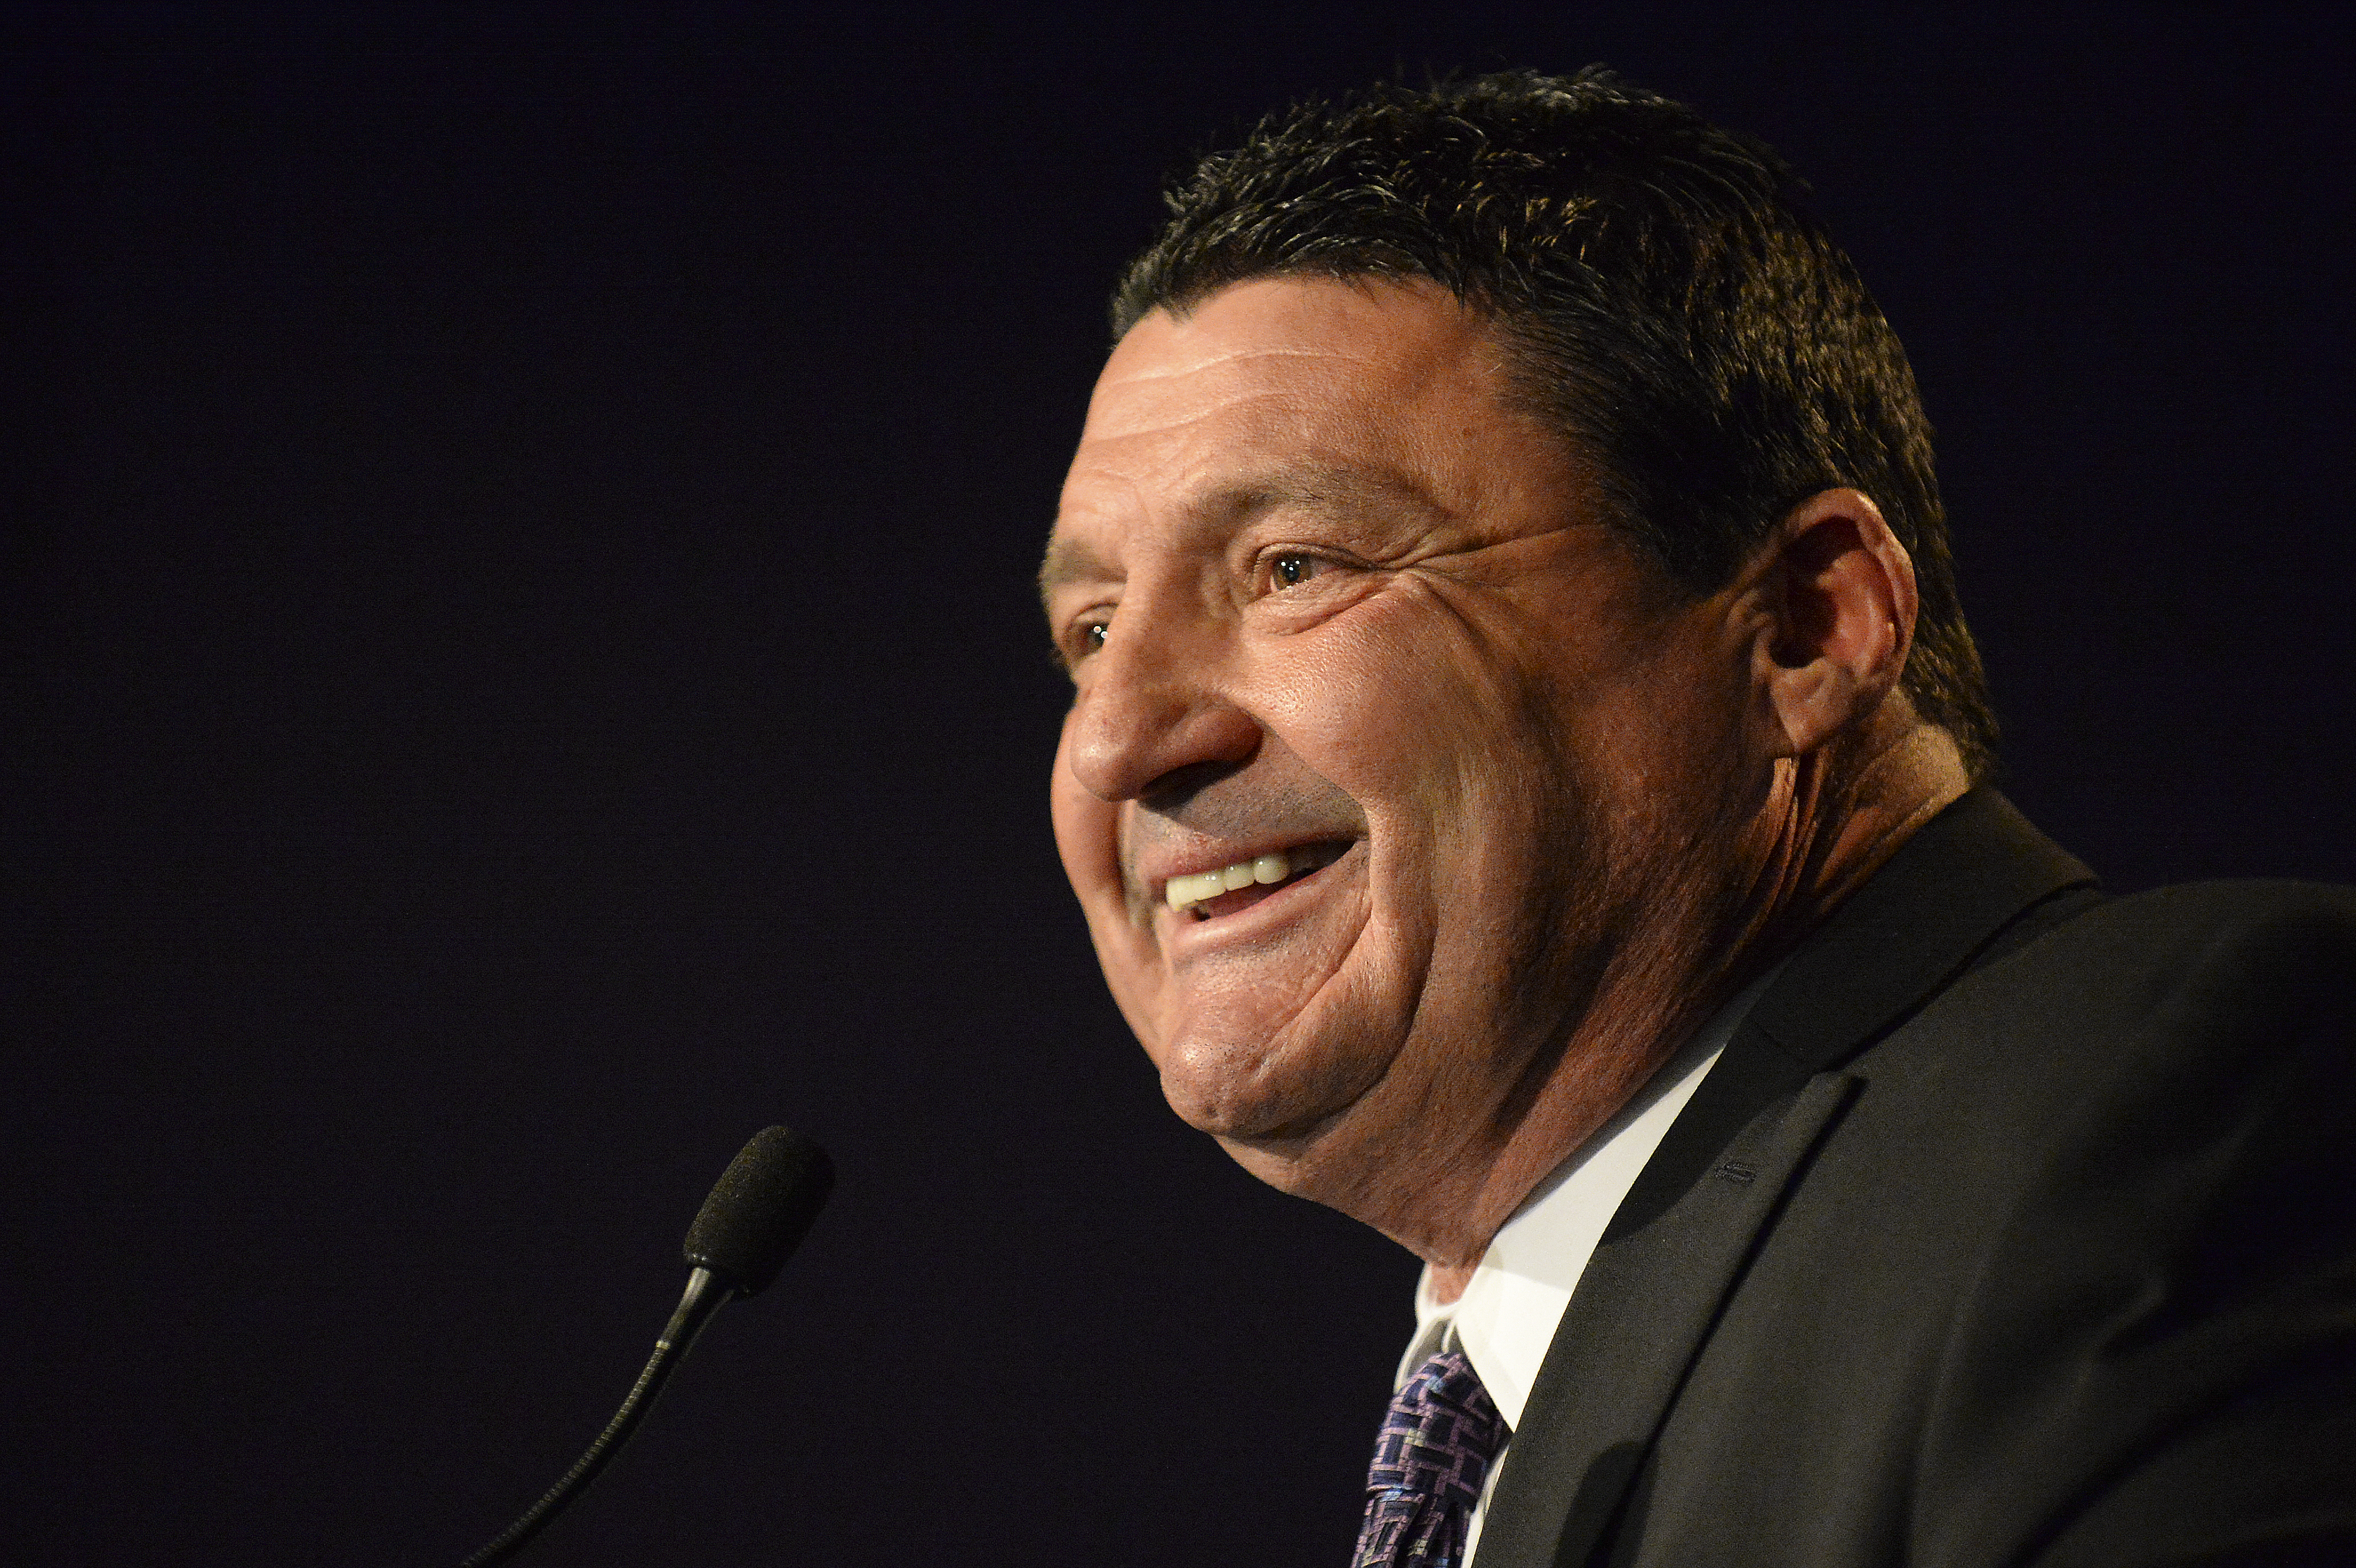 FILE - In this Jan. 14, 2015, file photo, LSU defensive line coach Ed Orgeron speaks during a news conference in Baton Rouge, La. Orgeron says that as a Louisiana native, it is a dream to have the opportunity to be LSUs head coach. He was formally introdu